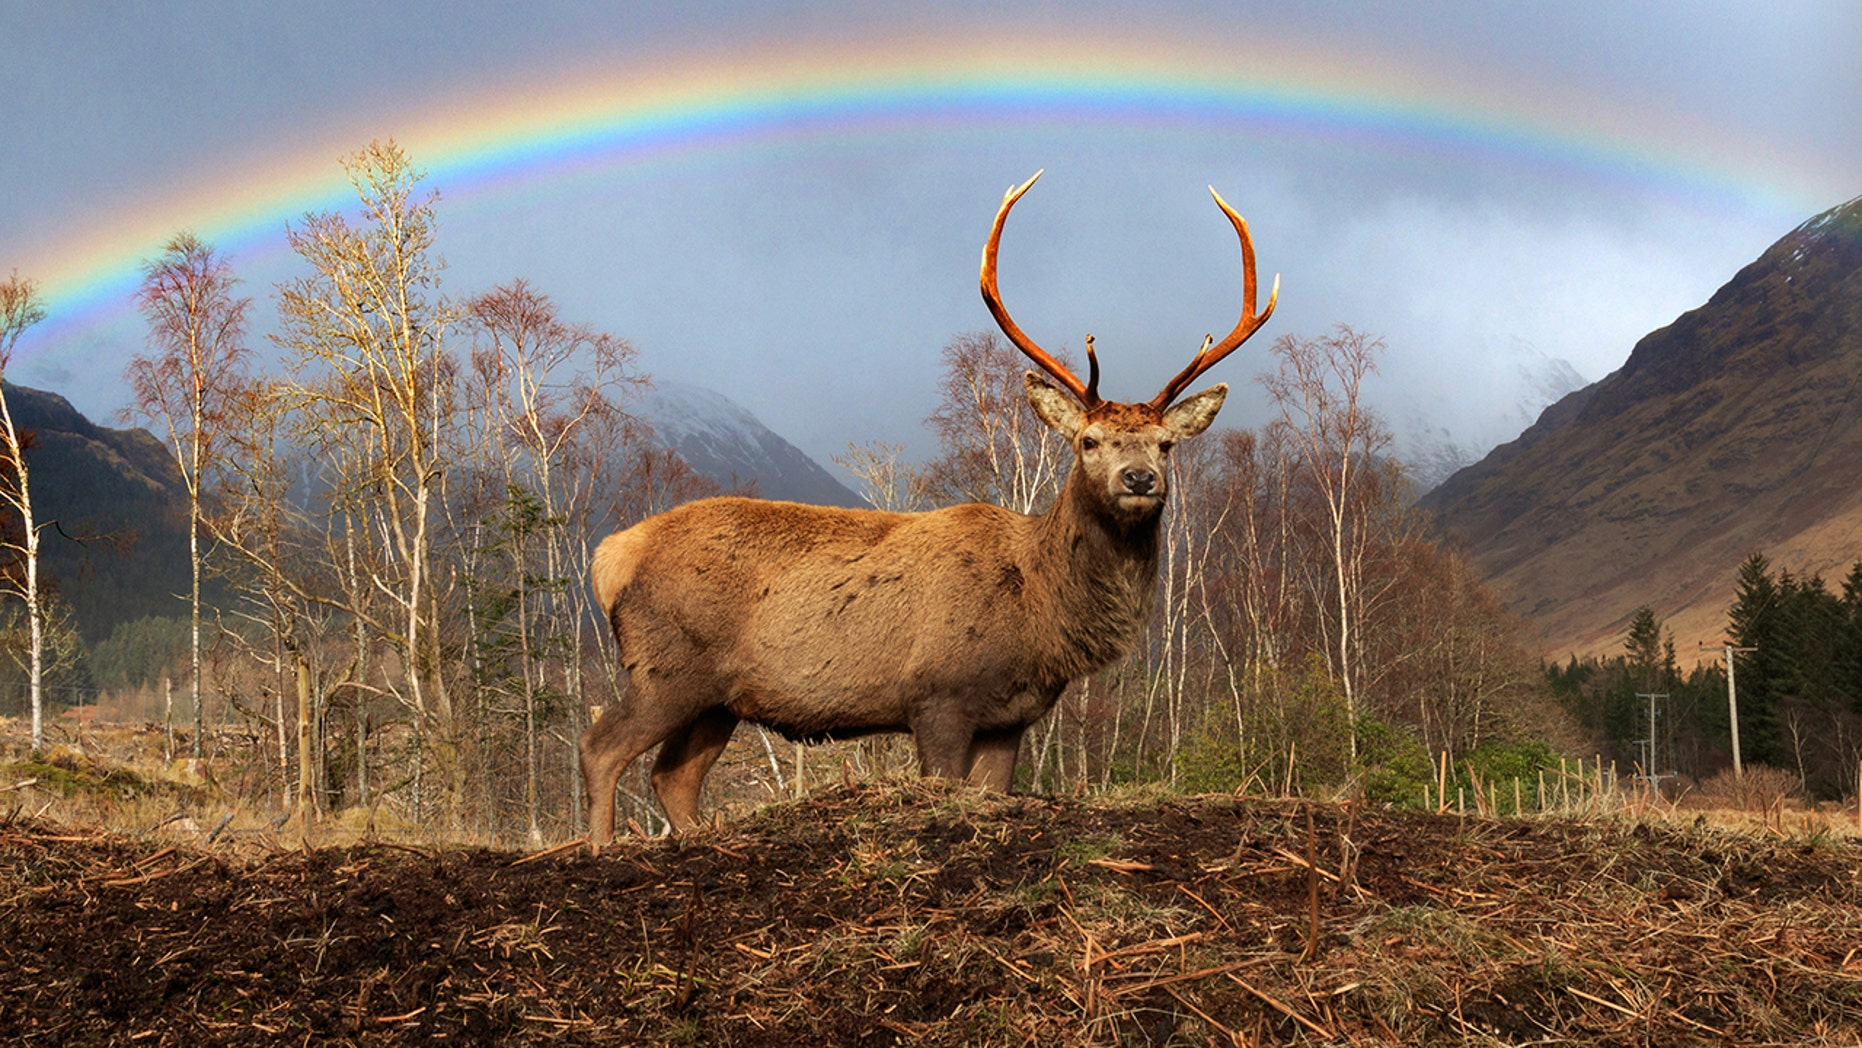 """Stephen Davies, of Scotland, says he was in the right place at the right time to capture the remarkable pics. """"It was a wow moment,"""" he said."""